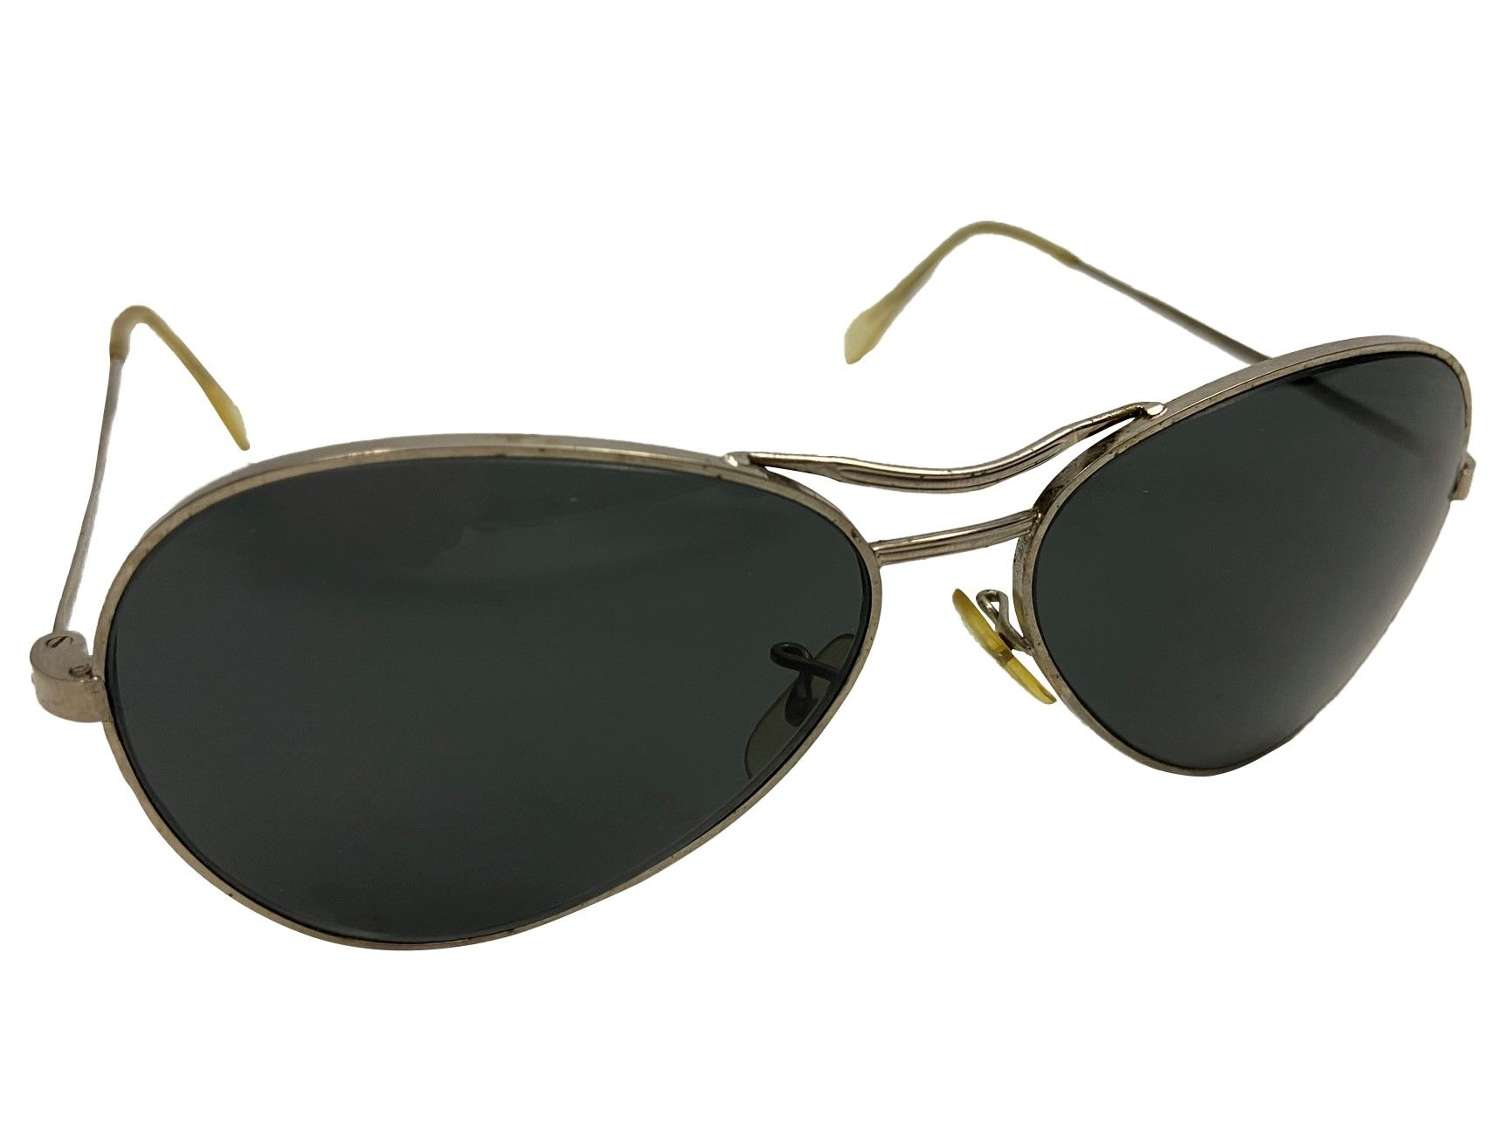 Original 1950s RAK MK 14 Sunglasses